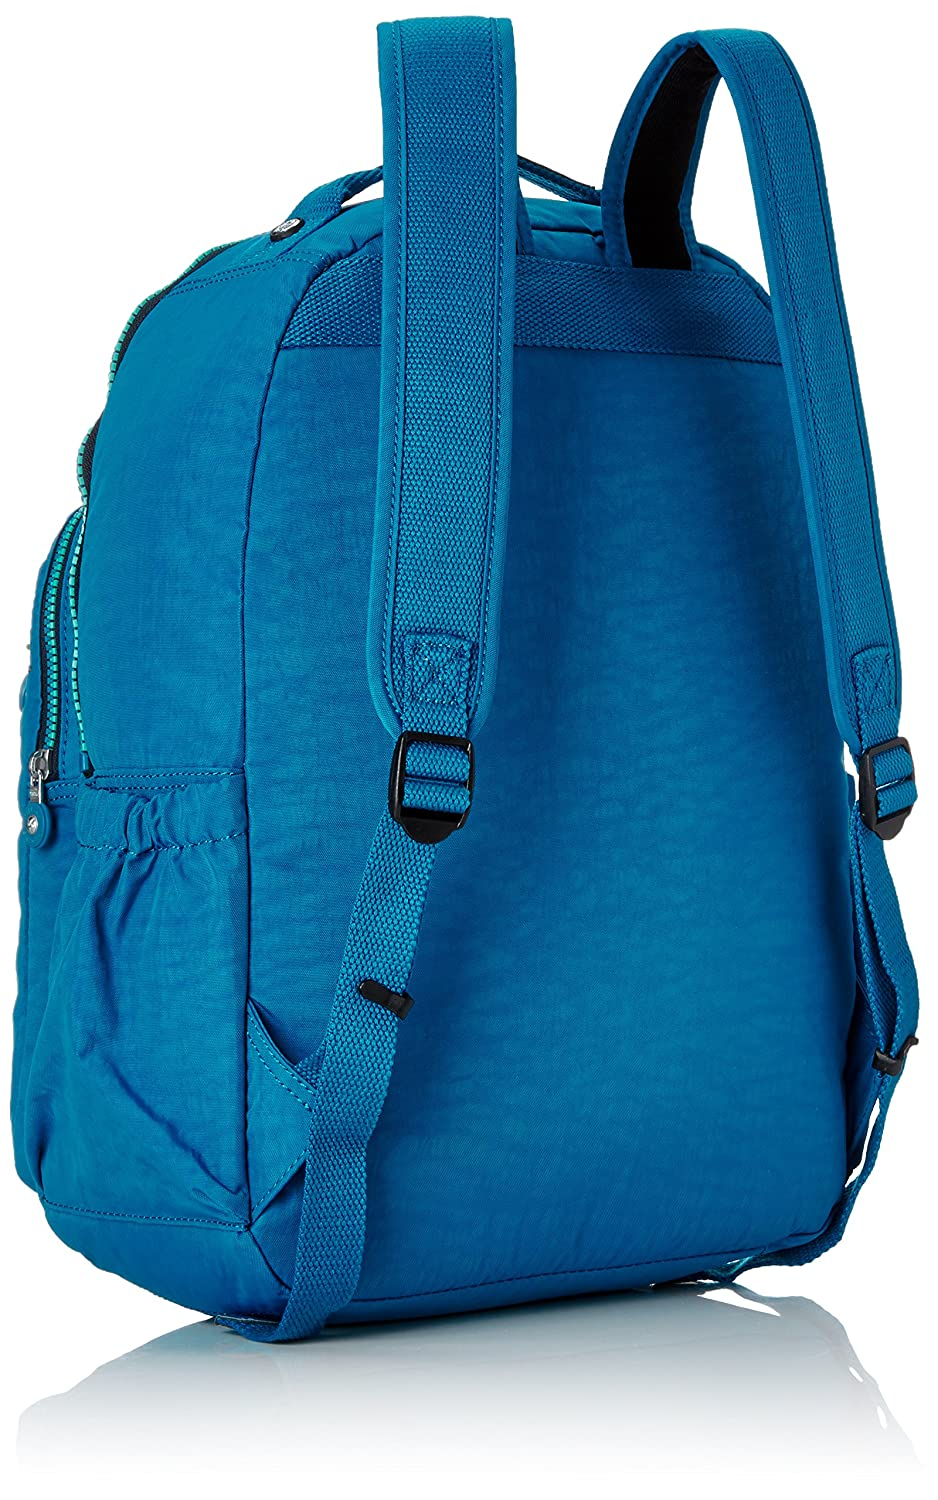 Amazon.com: Kipling Seoul Up Large Backpack With Laptop Protection Blue Green Mix: The Necessity limited